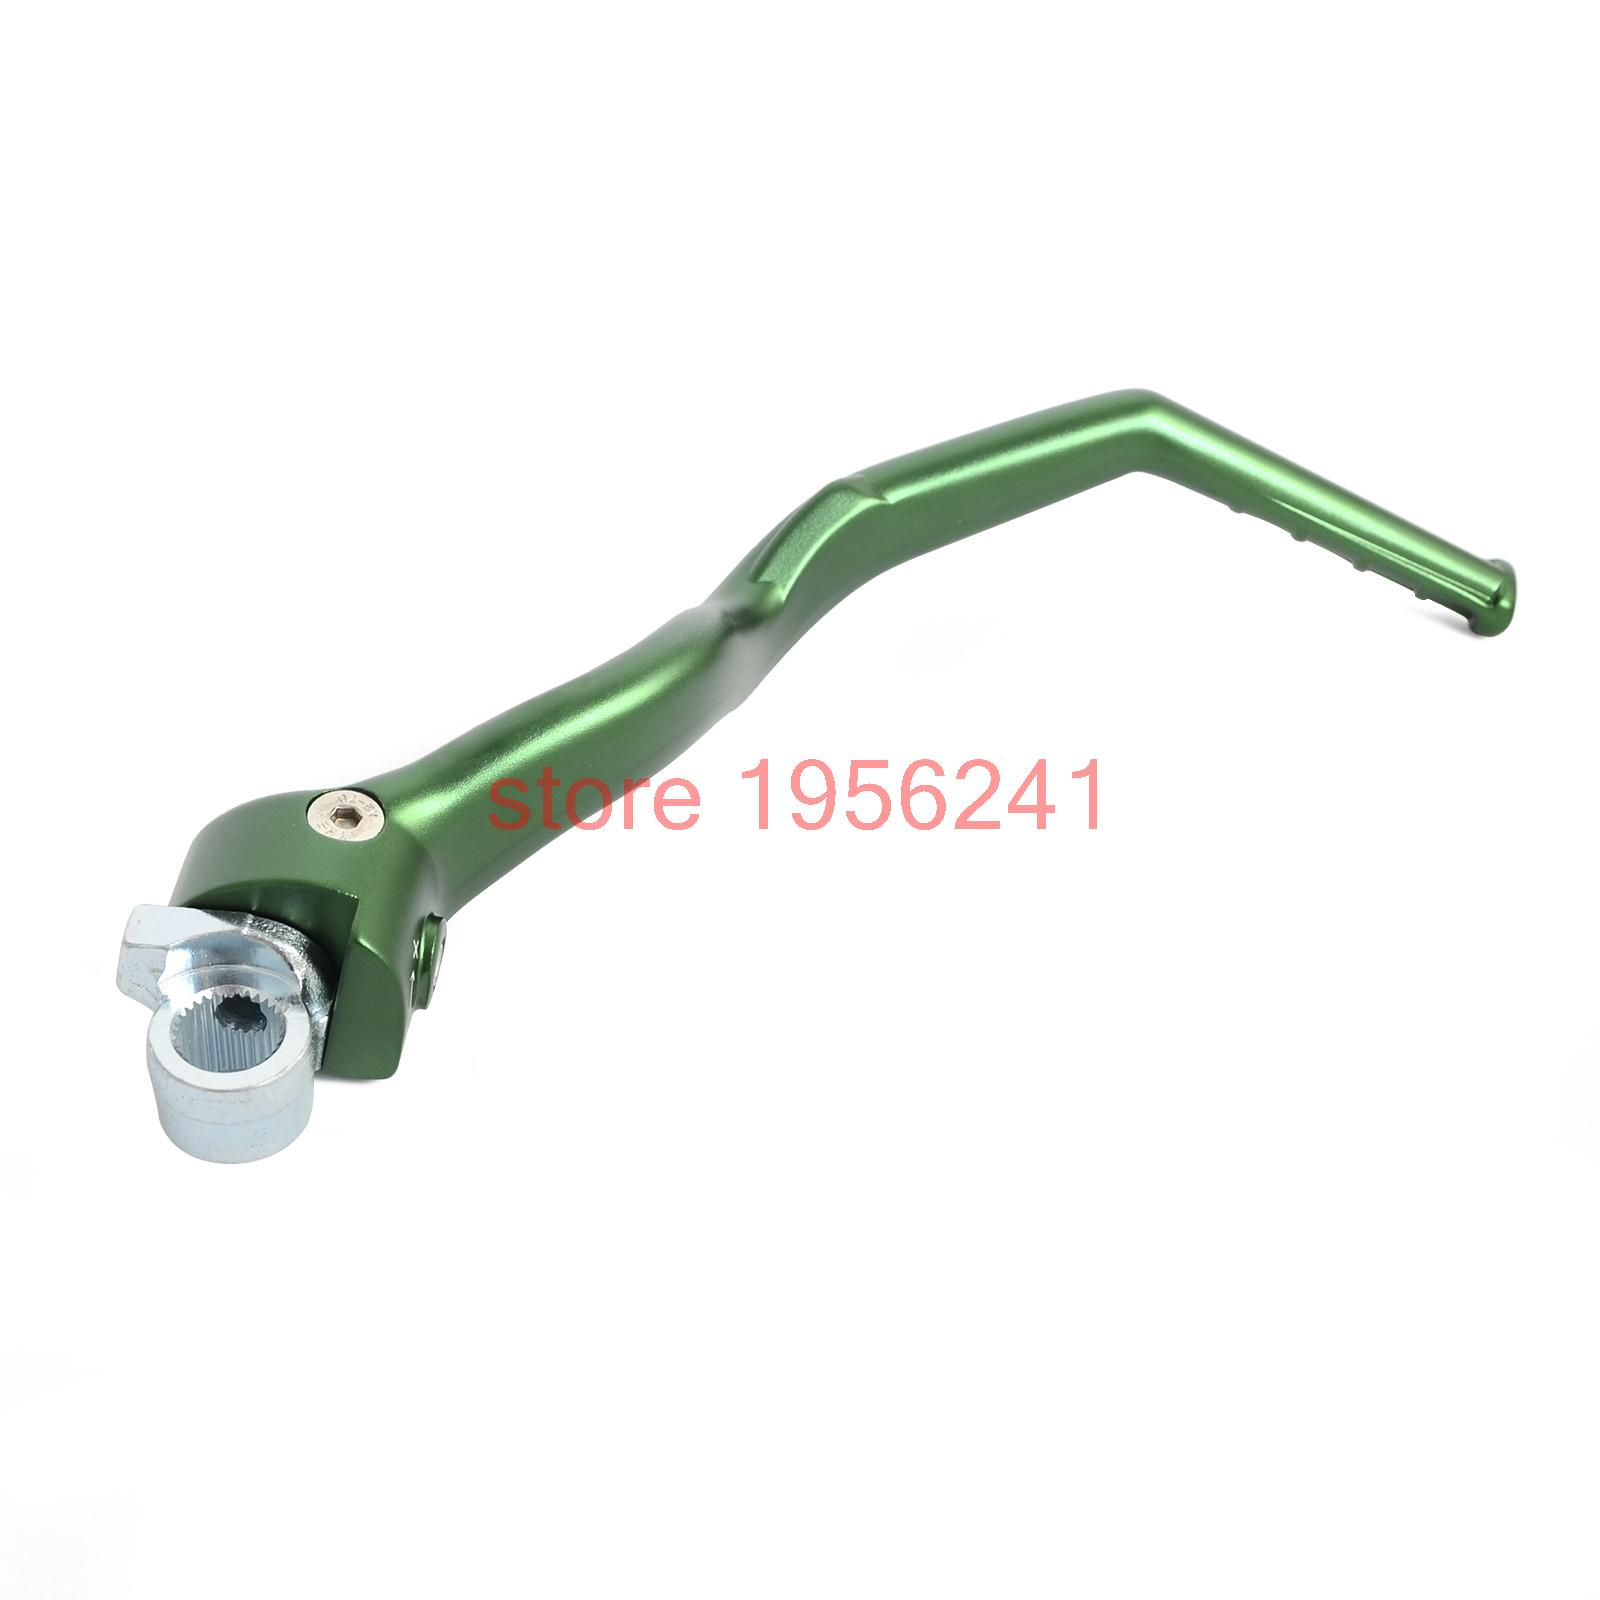 CNC Forged Kick Start Lever Starter for Kawasaki KX250F 2013-2016 KX450F 2009 2010 & 2014 2015 KX 250F 450F forged kick start lever starter for kawasaki kx450f 2007 2015